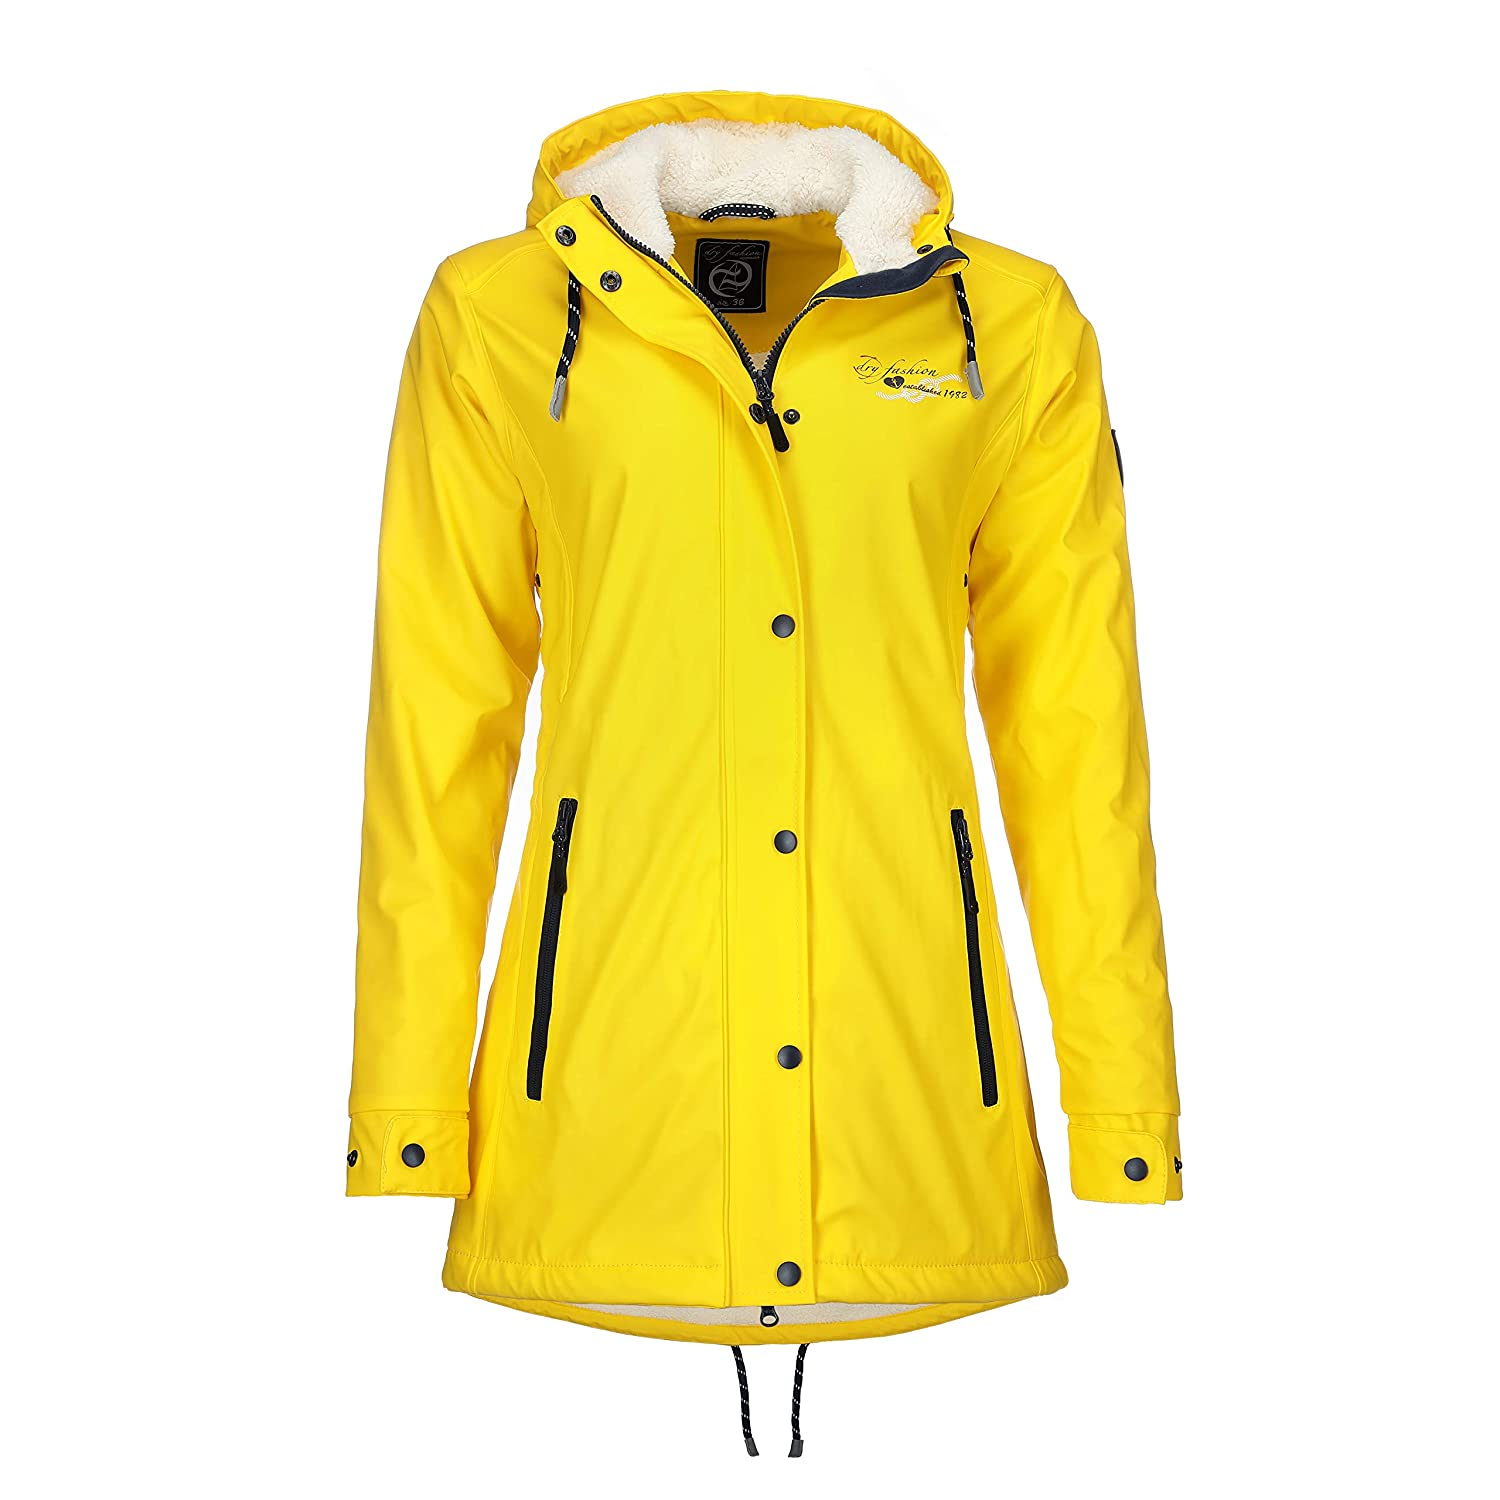 FastDirect Damen Regenjacke